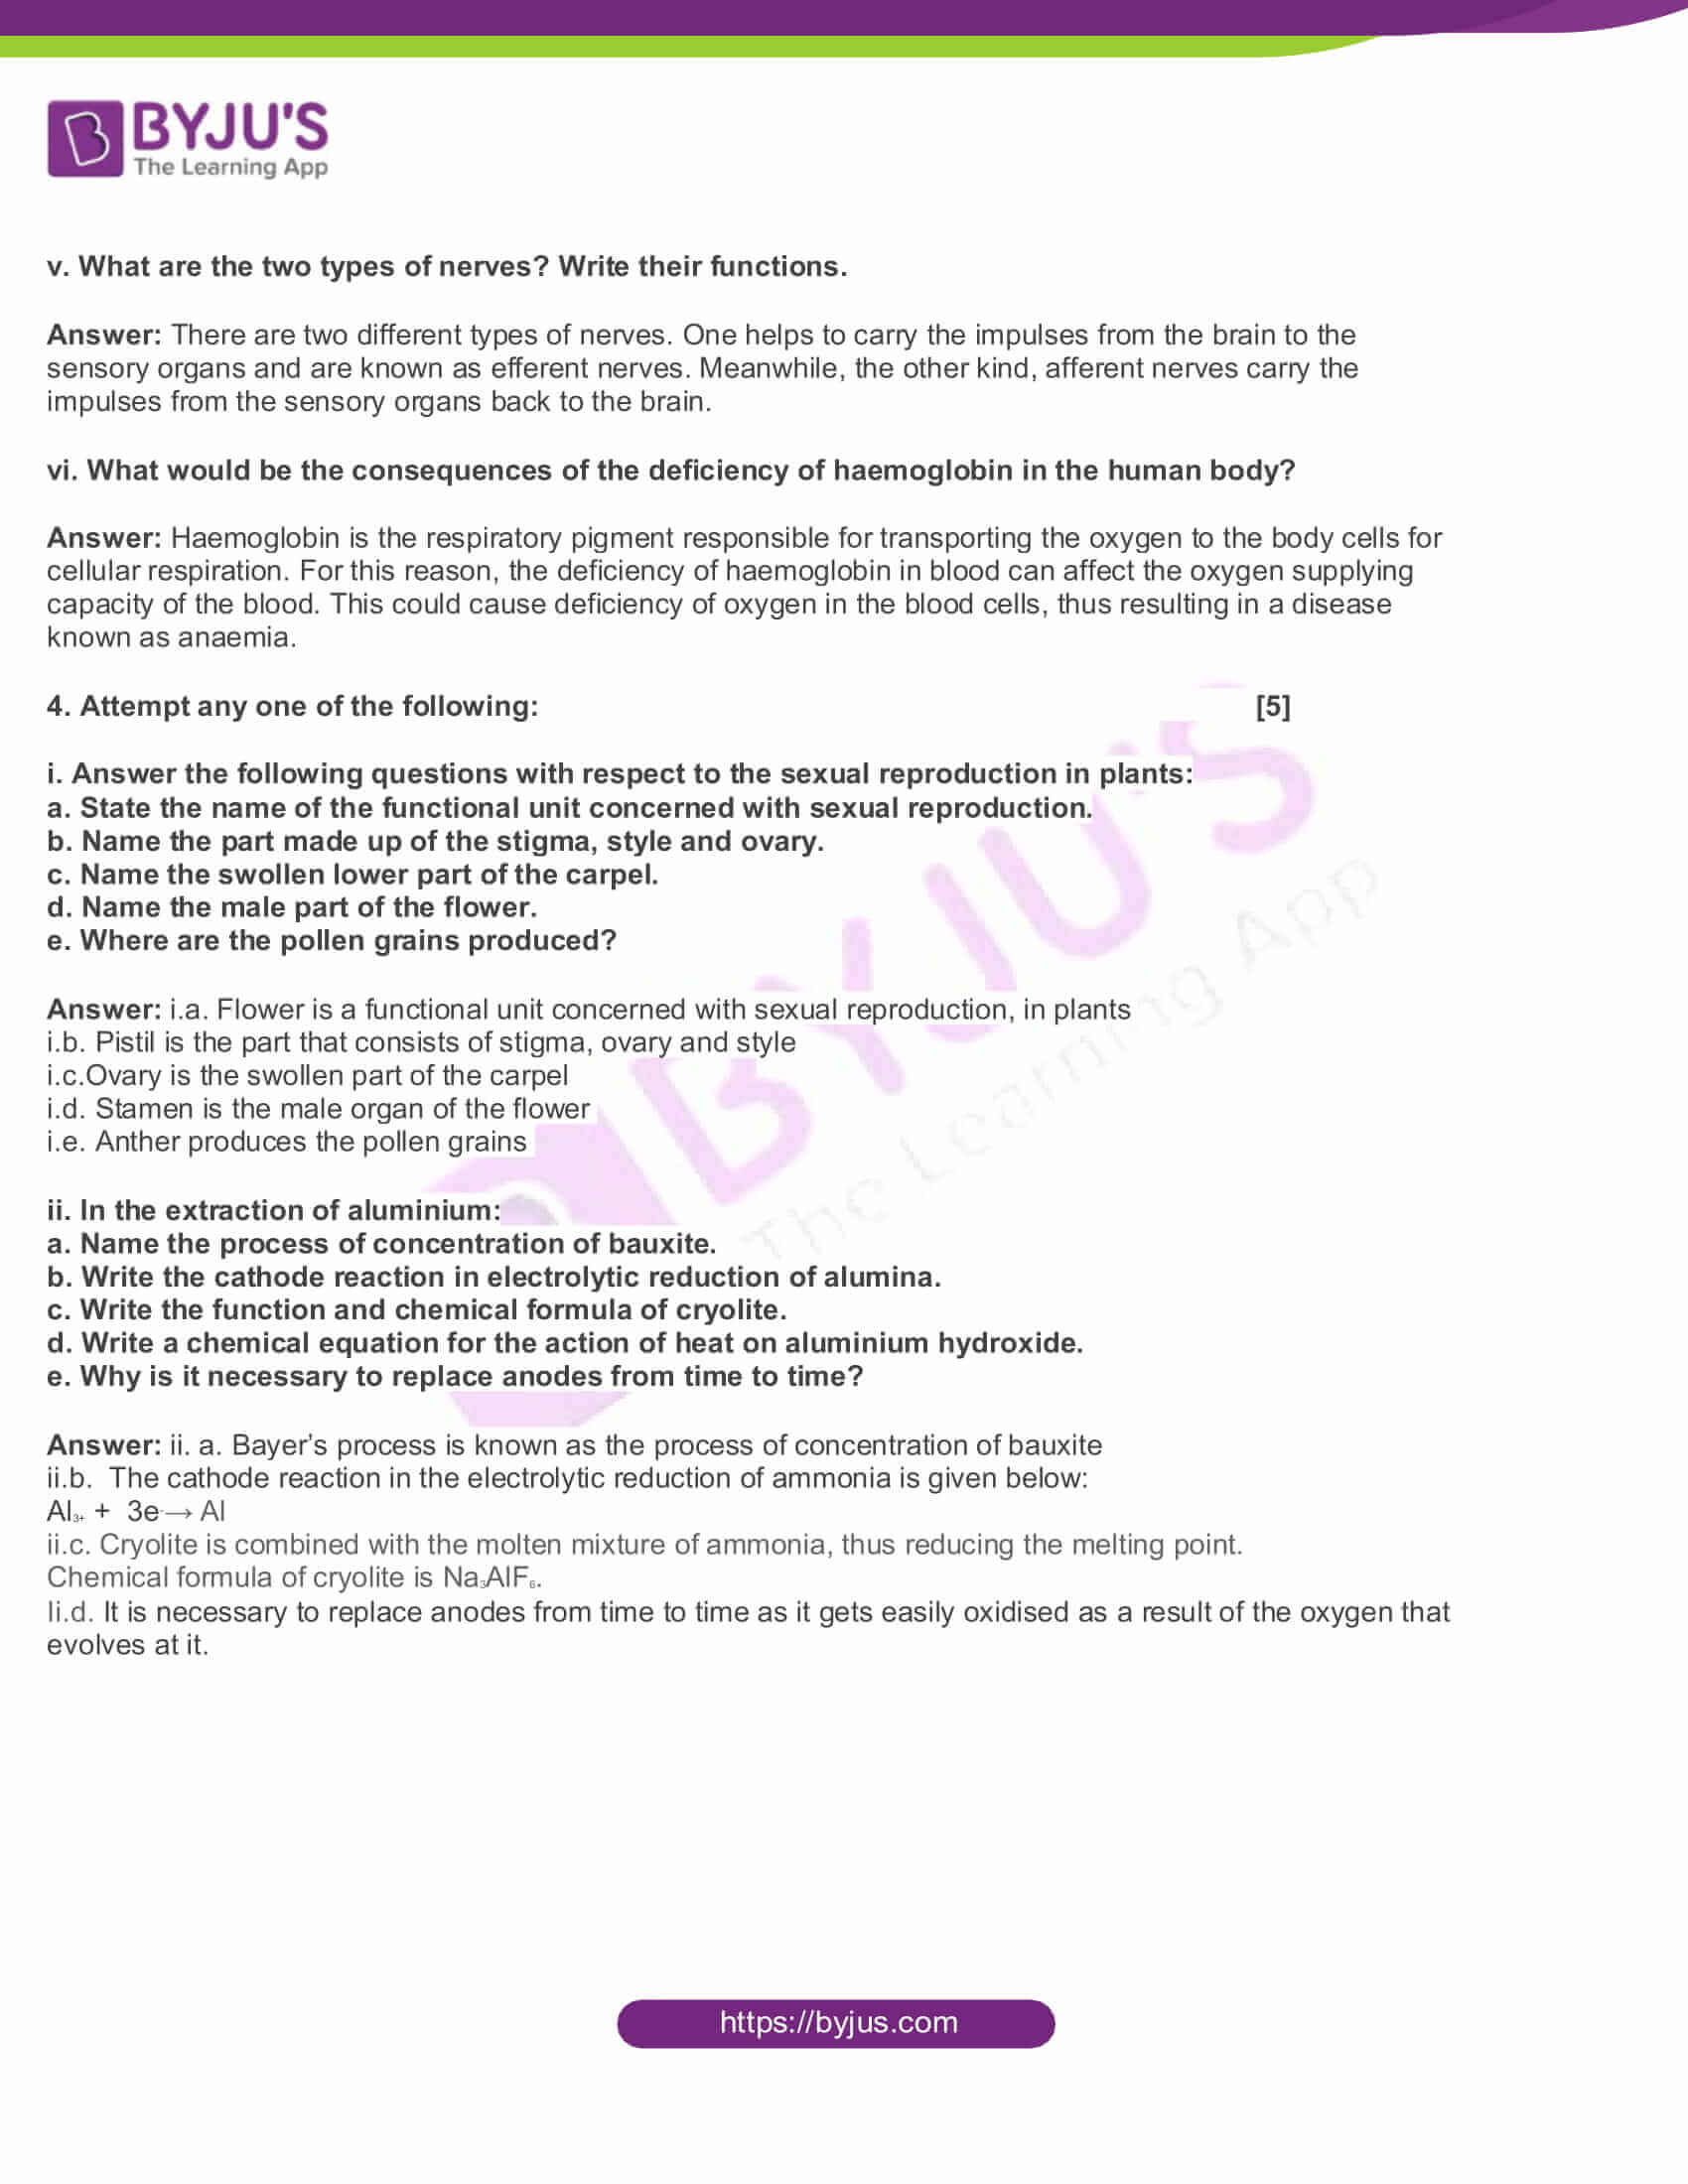 MSBSHSE Class 10 Science and Technology Part II Solved Previous Year Paper 2017 5